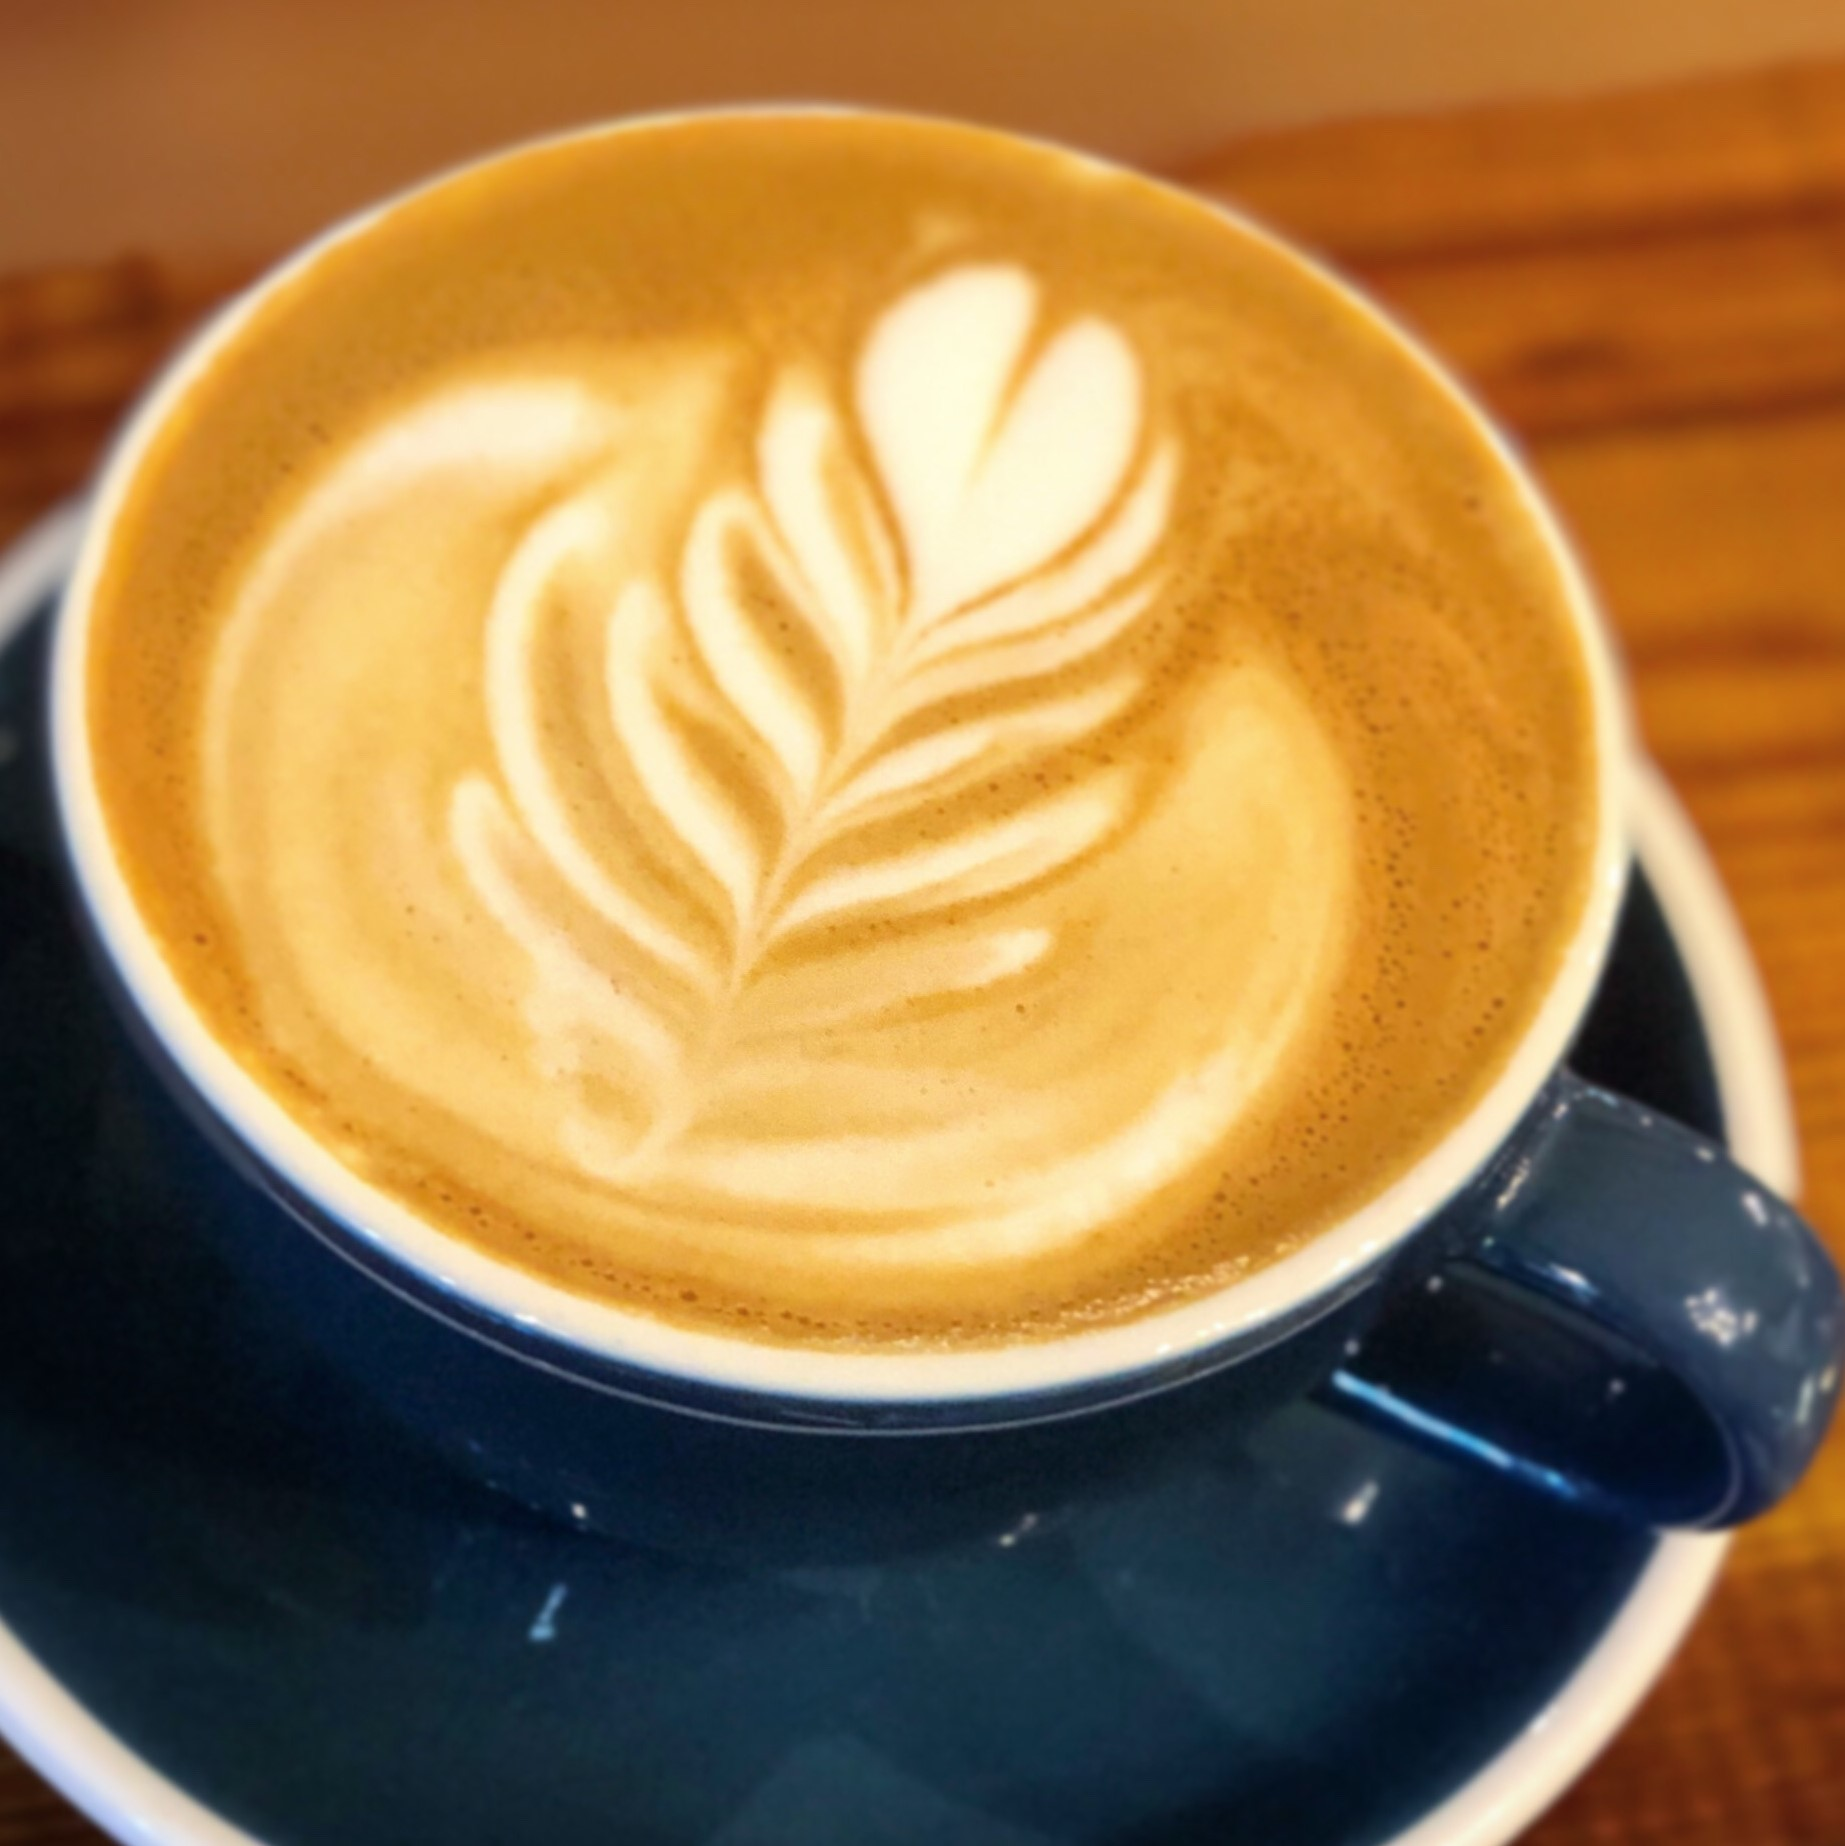 Coffee Returns and Limited Indoor Seating Begins – October 1st